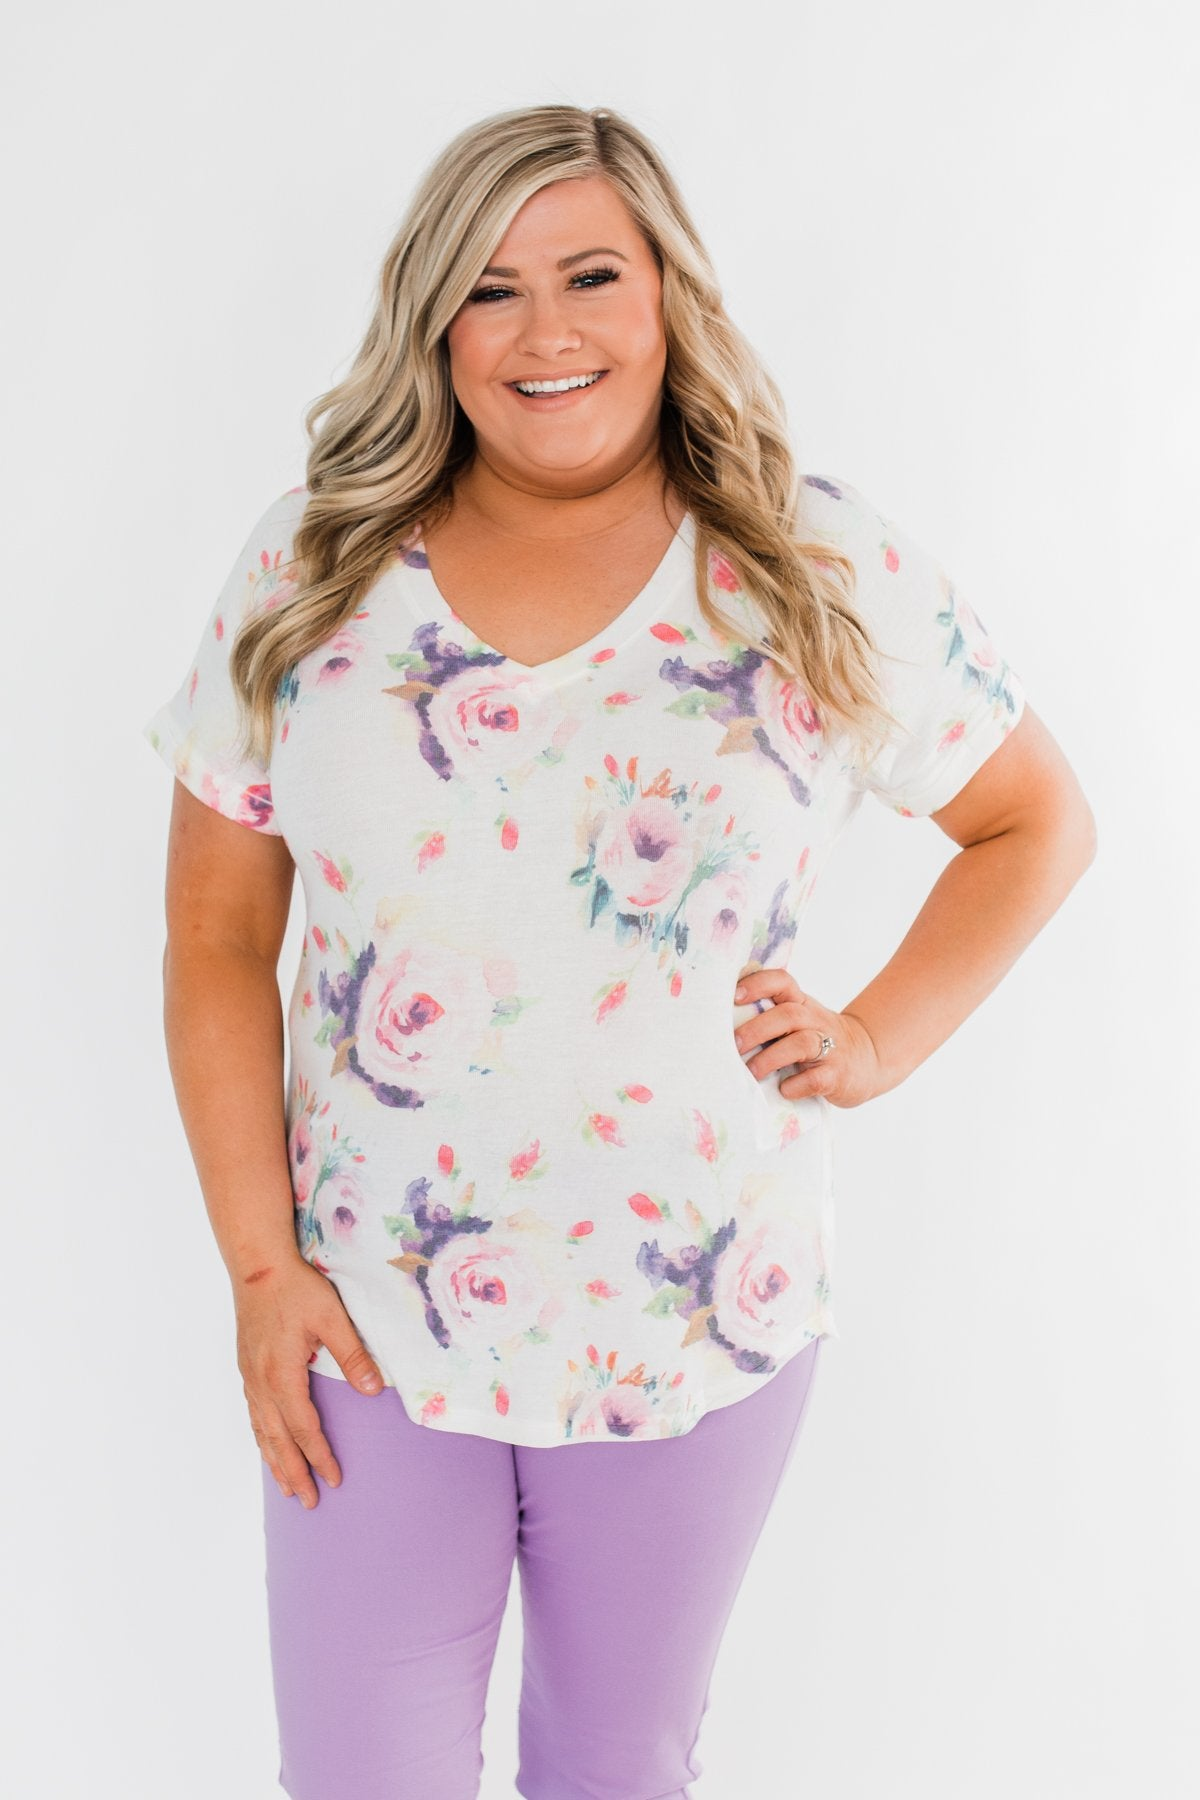 Make It Special Floral V-Neck Top- White